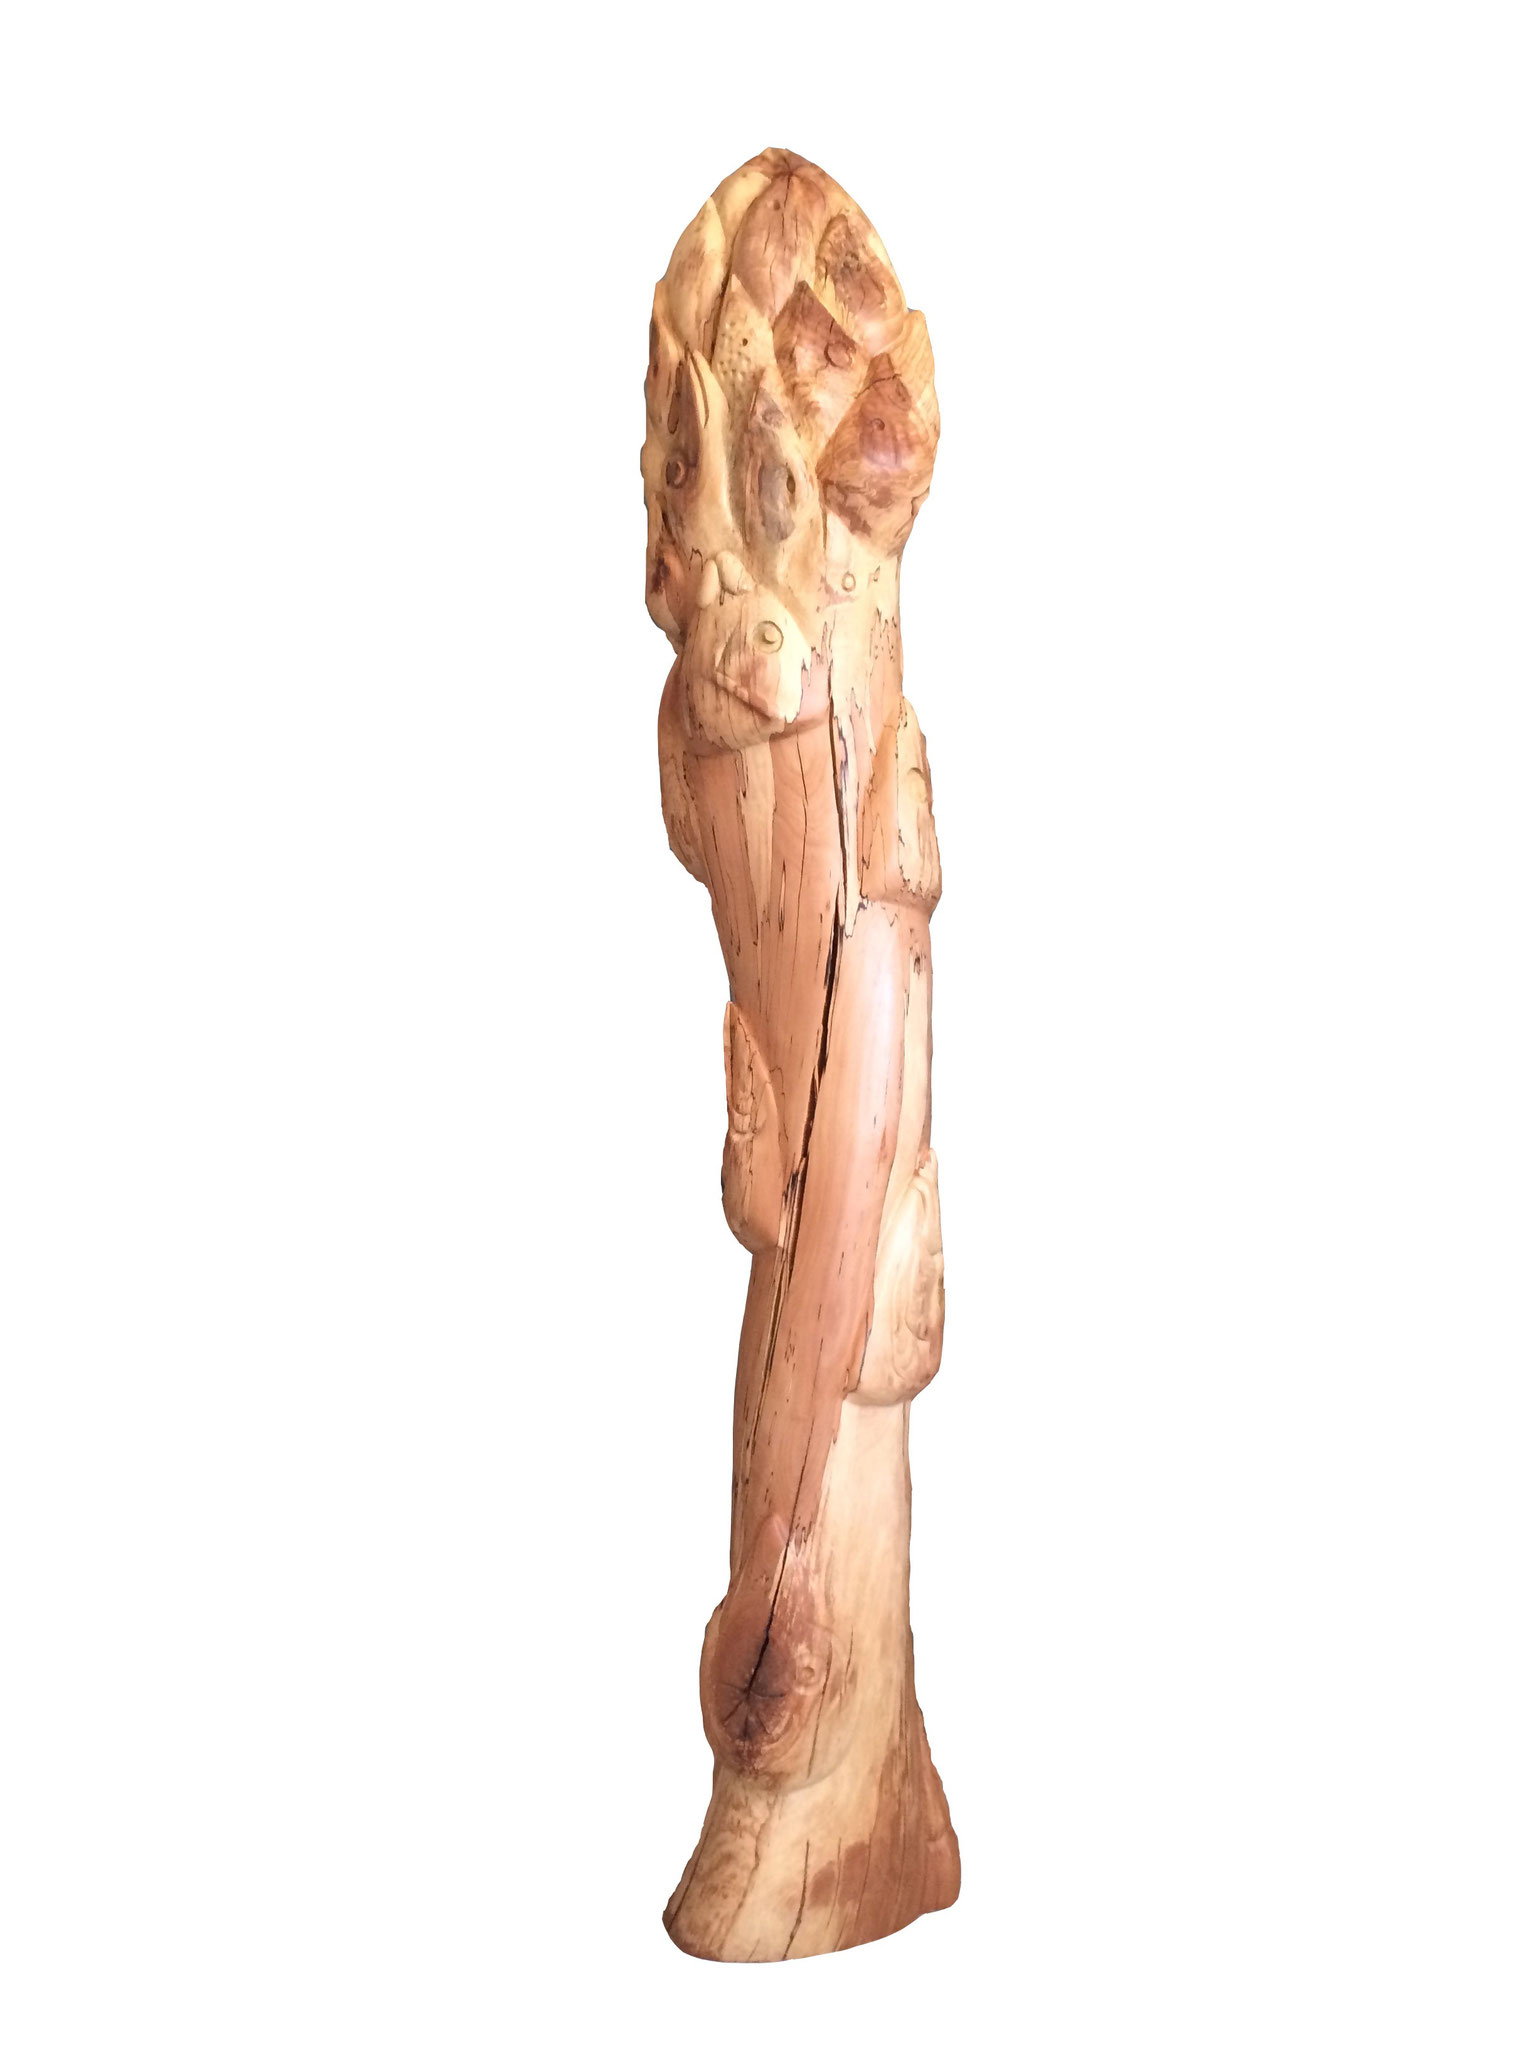 Asparagus sculpted with fishheads  (180x25x25)